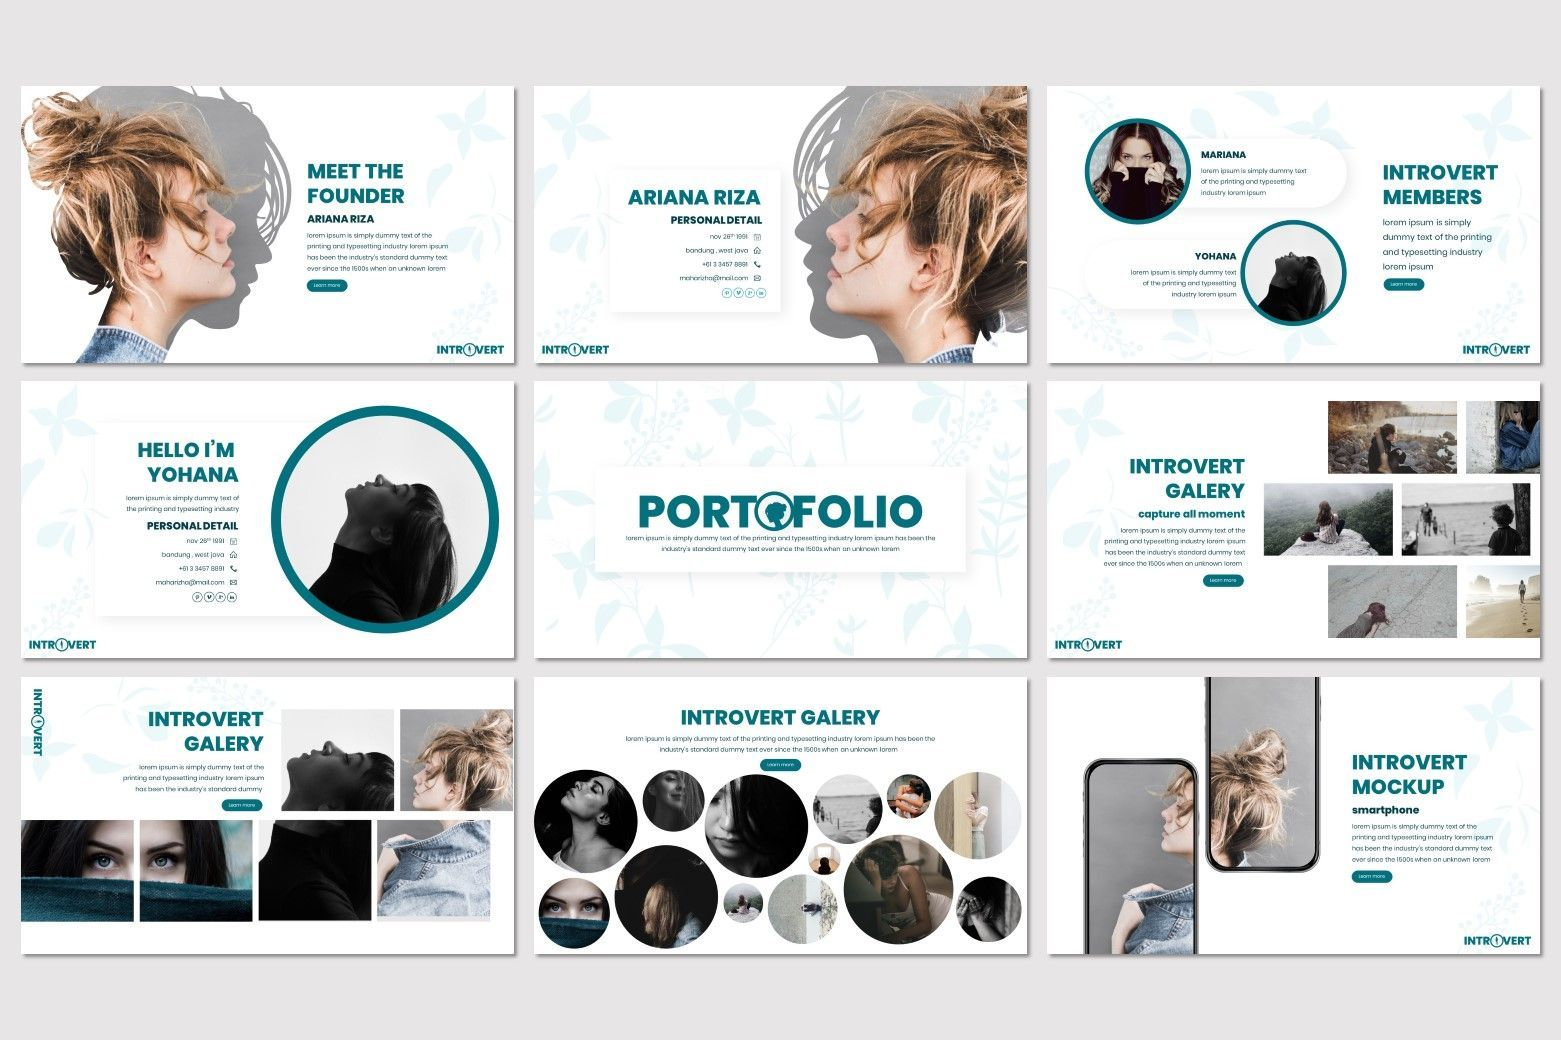 Introvert - PowerPoint Template, Slide 4, 07629, Presentation Templates — PoweredTemplate.com